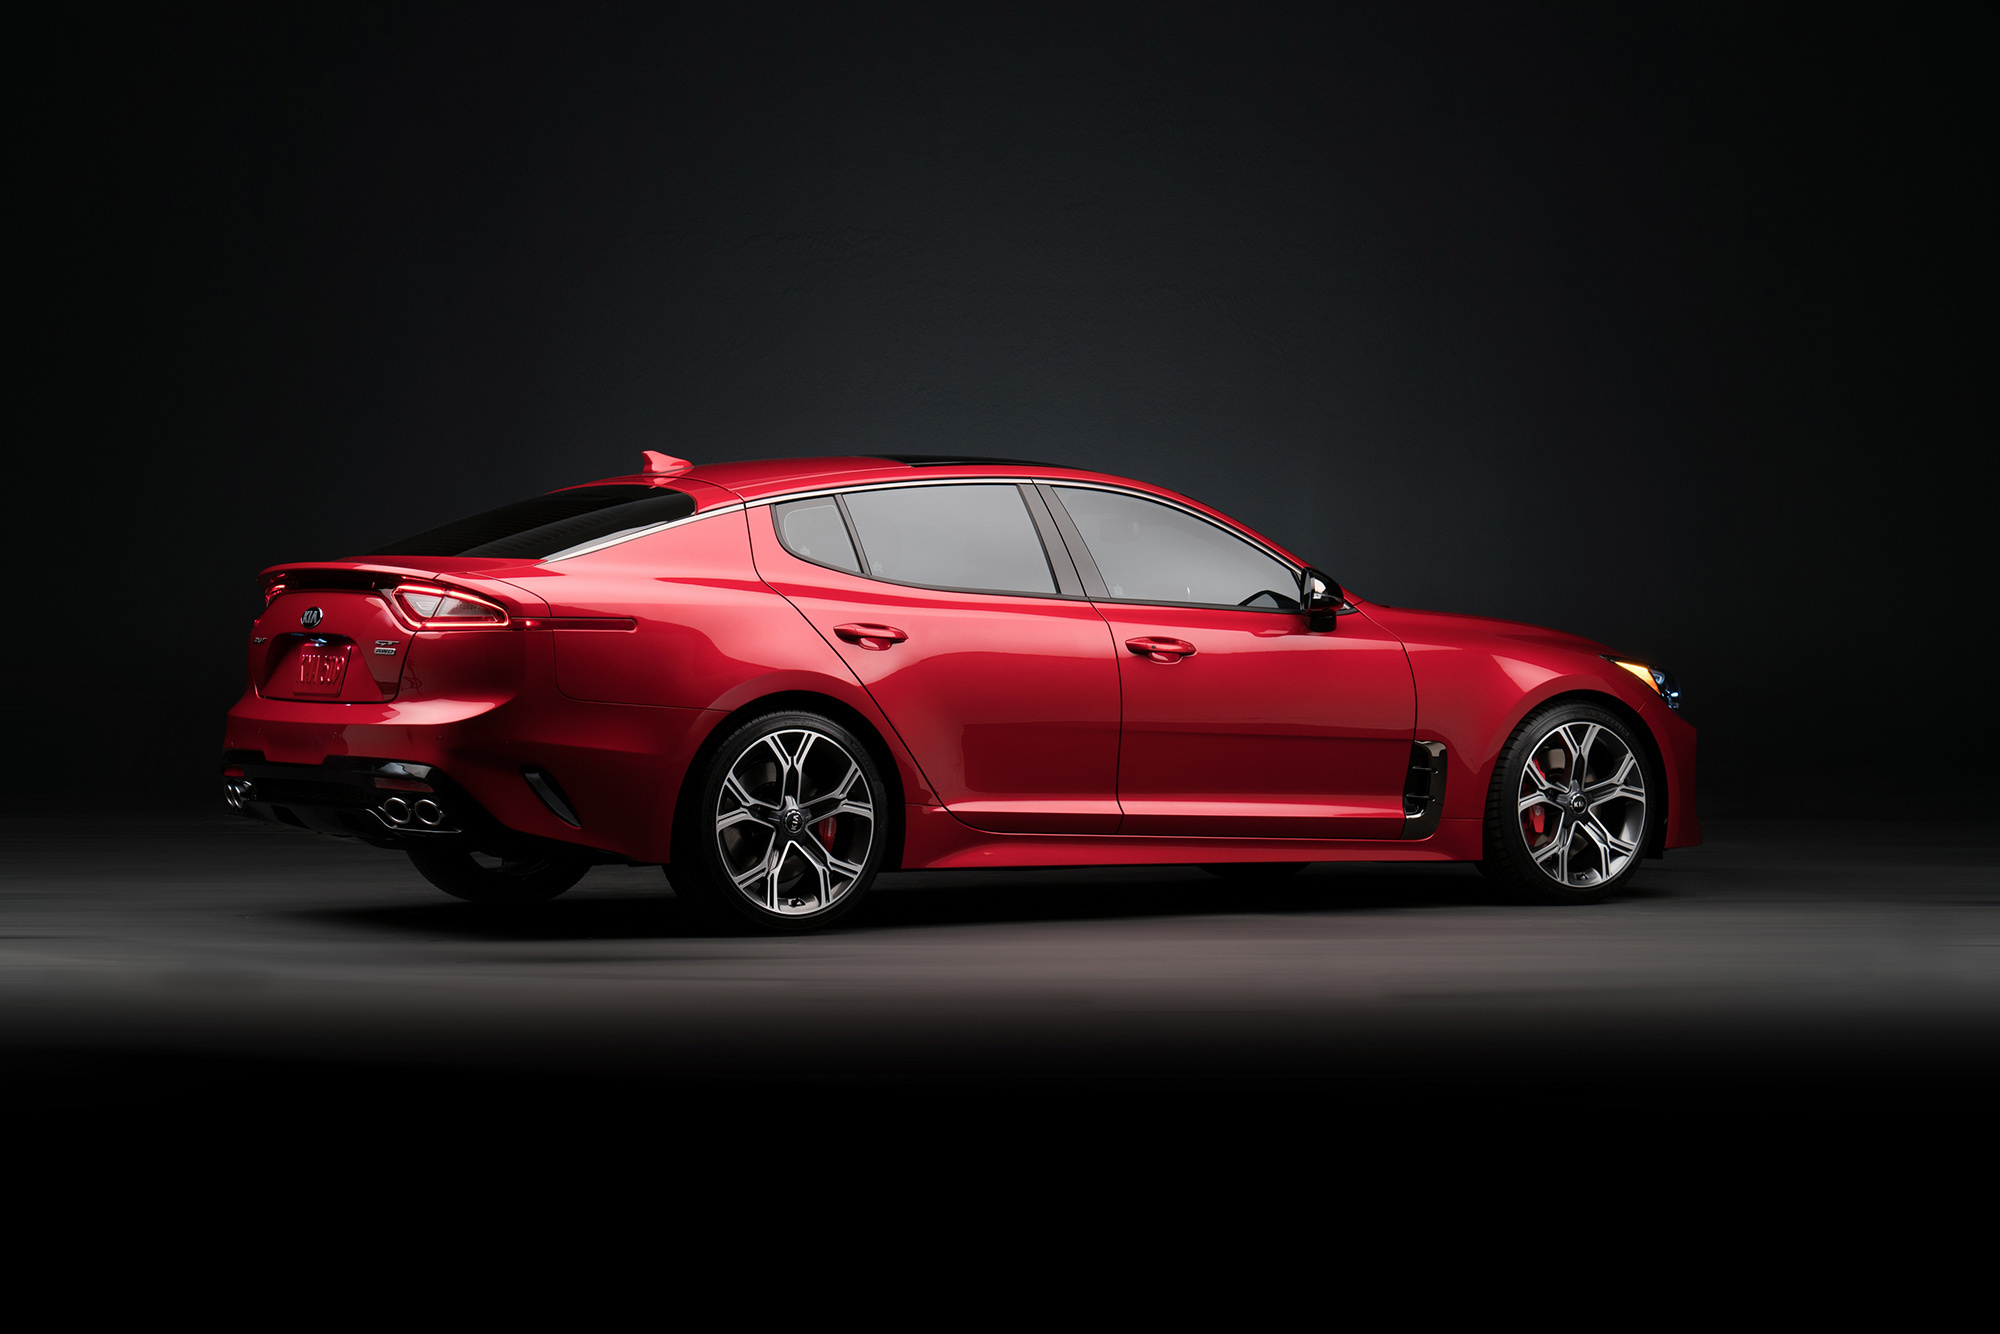 Kia Stinger High Definition Wallpapers